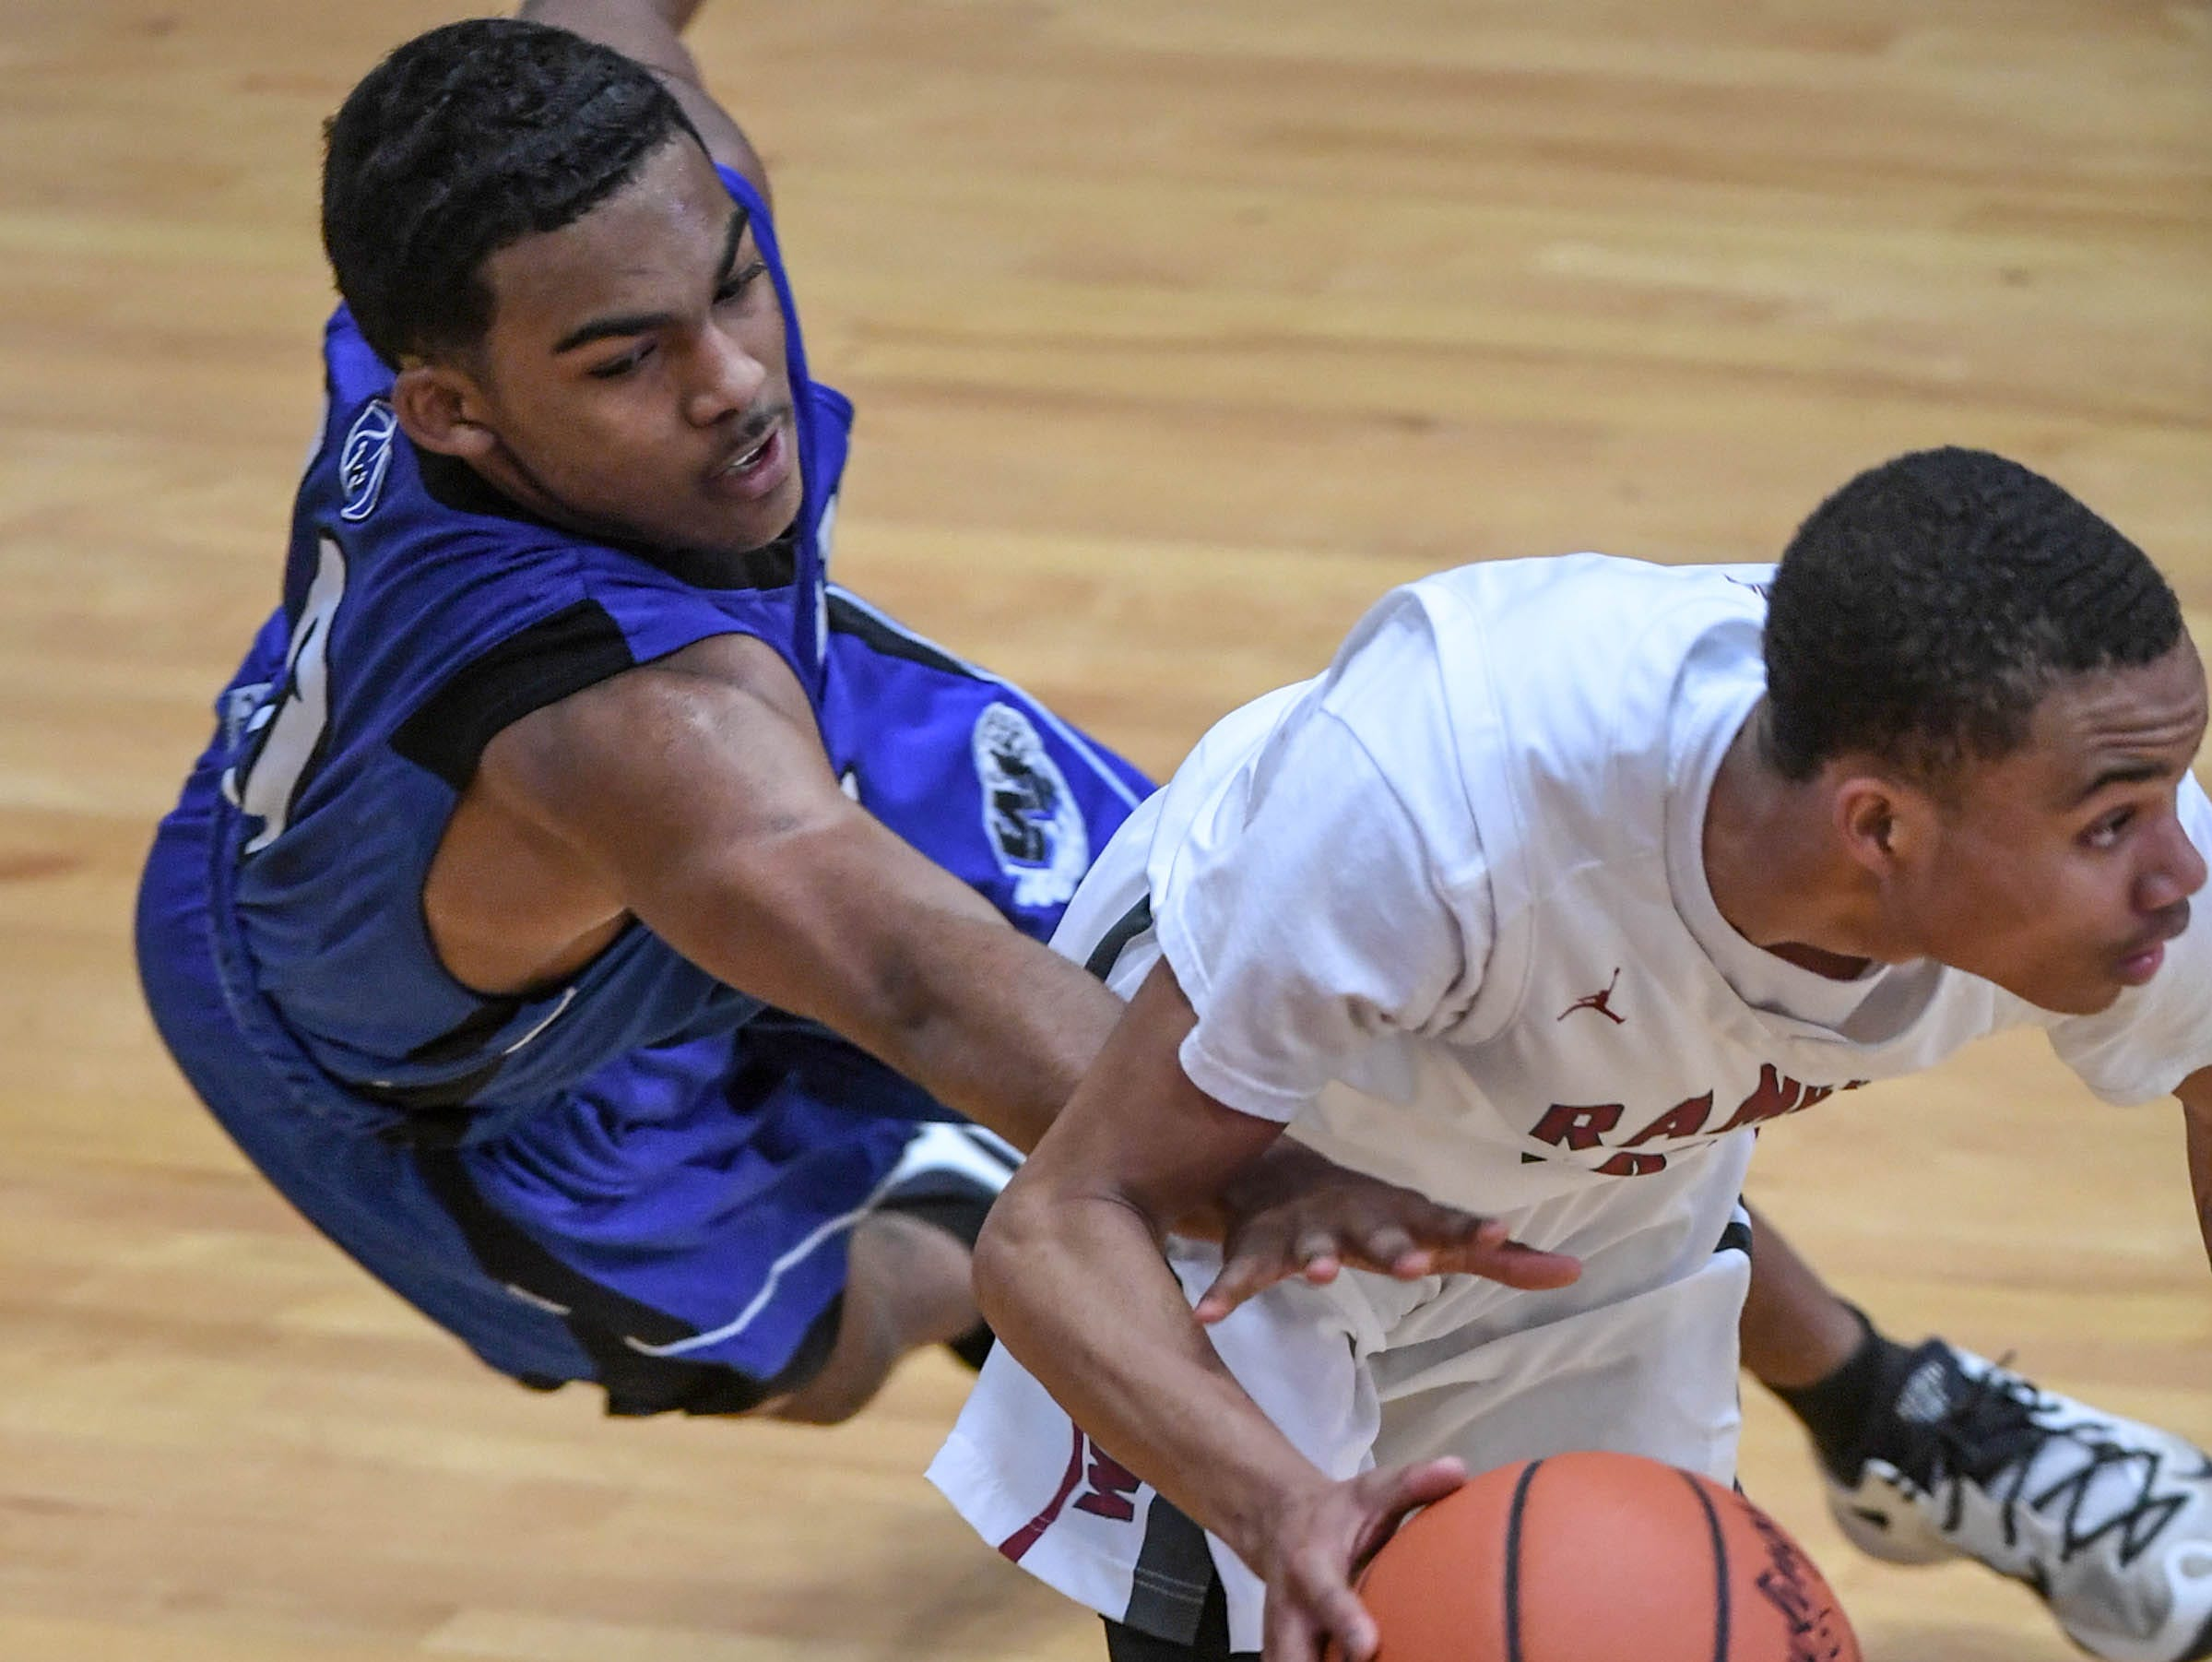 Westside senior Odarius Cade(2) dribbles by Woodmont junior Ashton Arnold(10) during the fourth quarter at Westside High School in Anderson on Tuesday. Westside beat Woodmont 85-57.